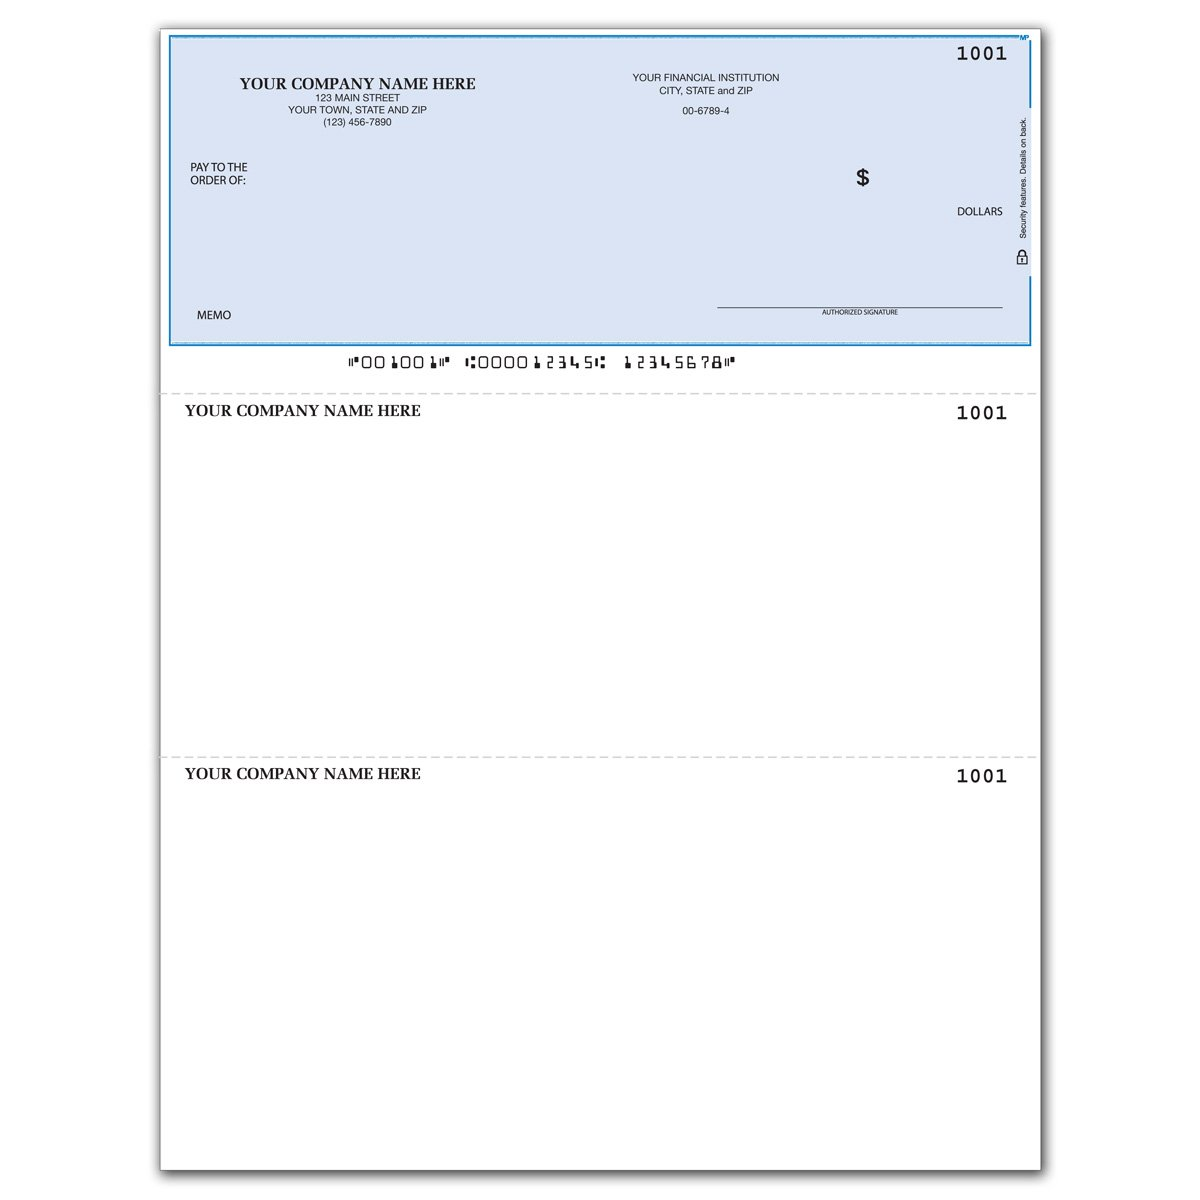 Laser Business Checks, Top Format - Use with with QuickBooks/Quicken - Unlined (100 qty) - Custom